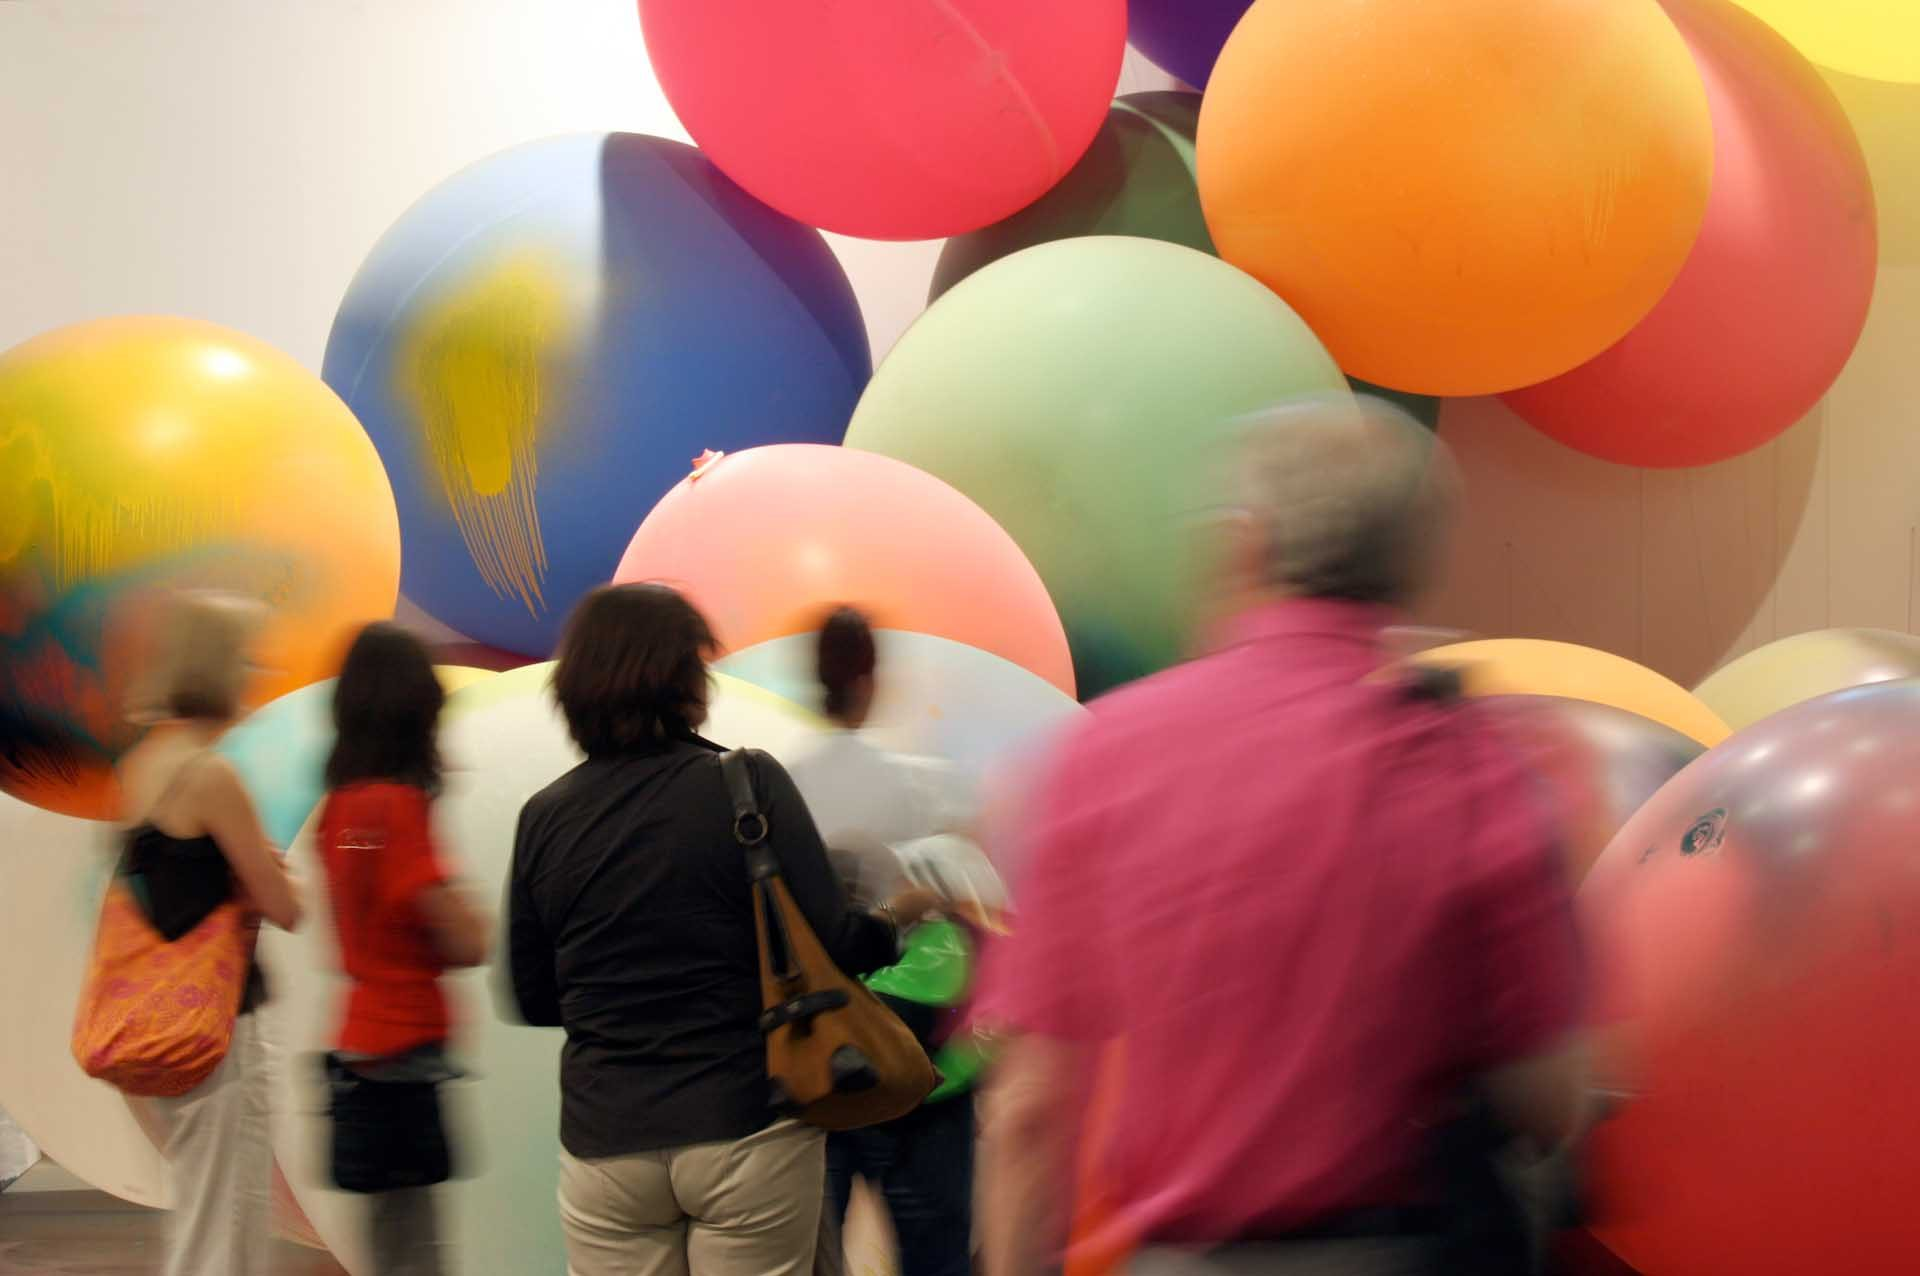 "Art 38 Unlimited, 2007: An installation with large coloured balloons and paintings by Katharina Grosse ""Atomimage"" from 2007"